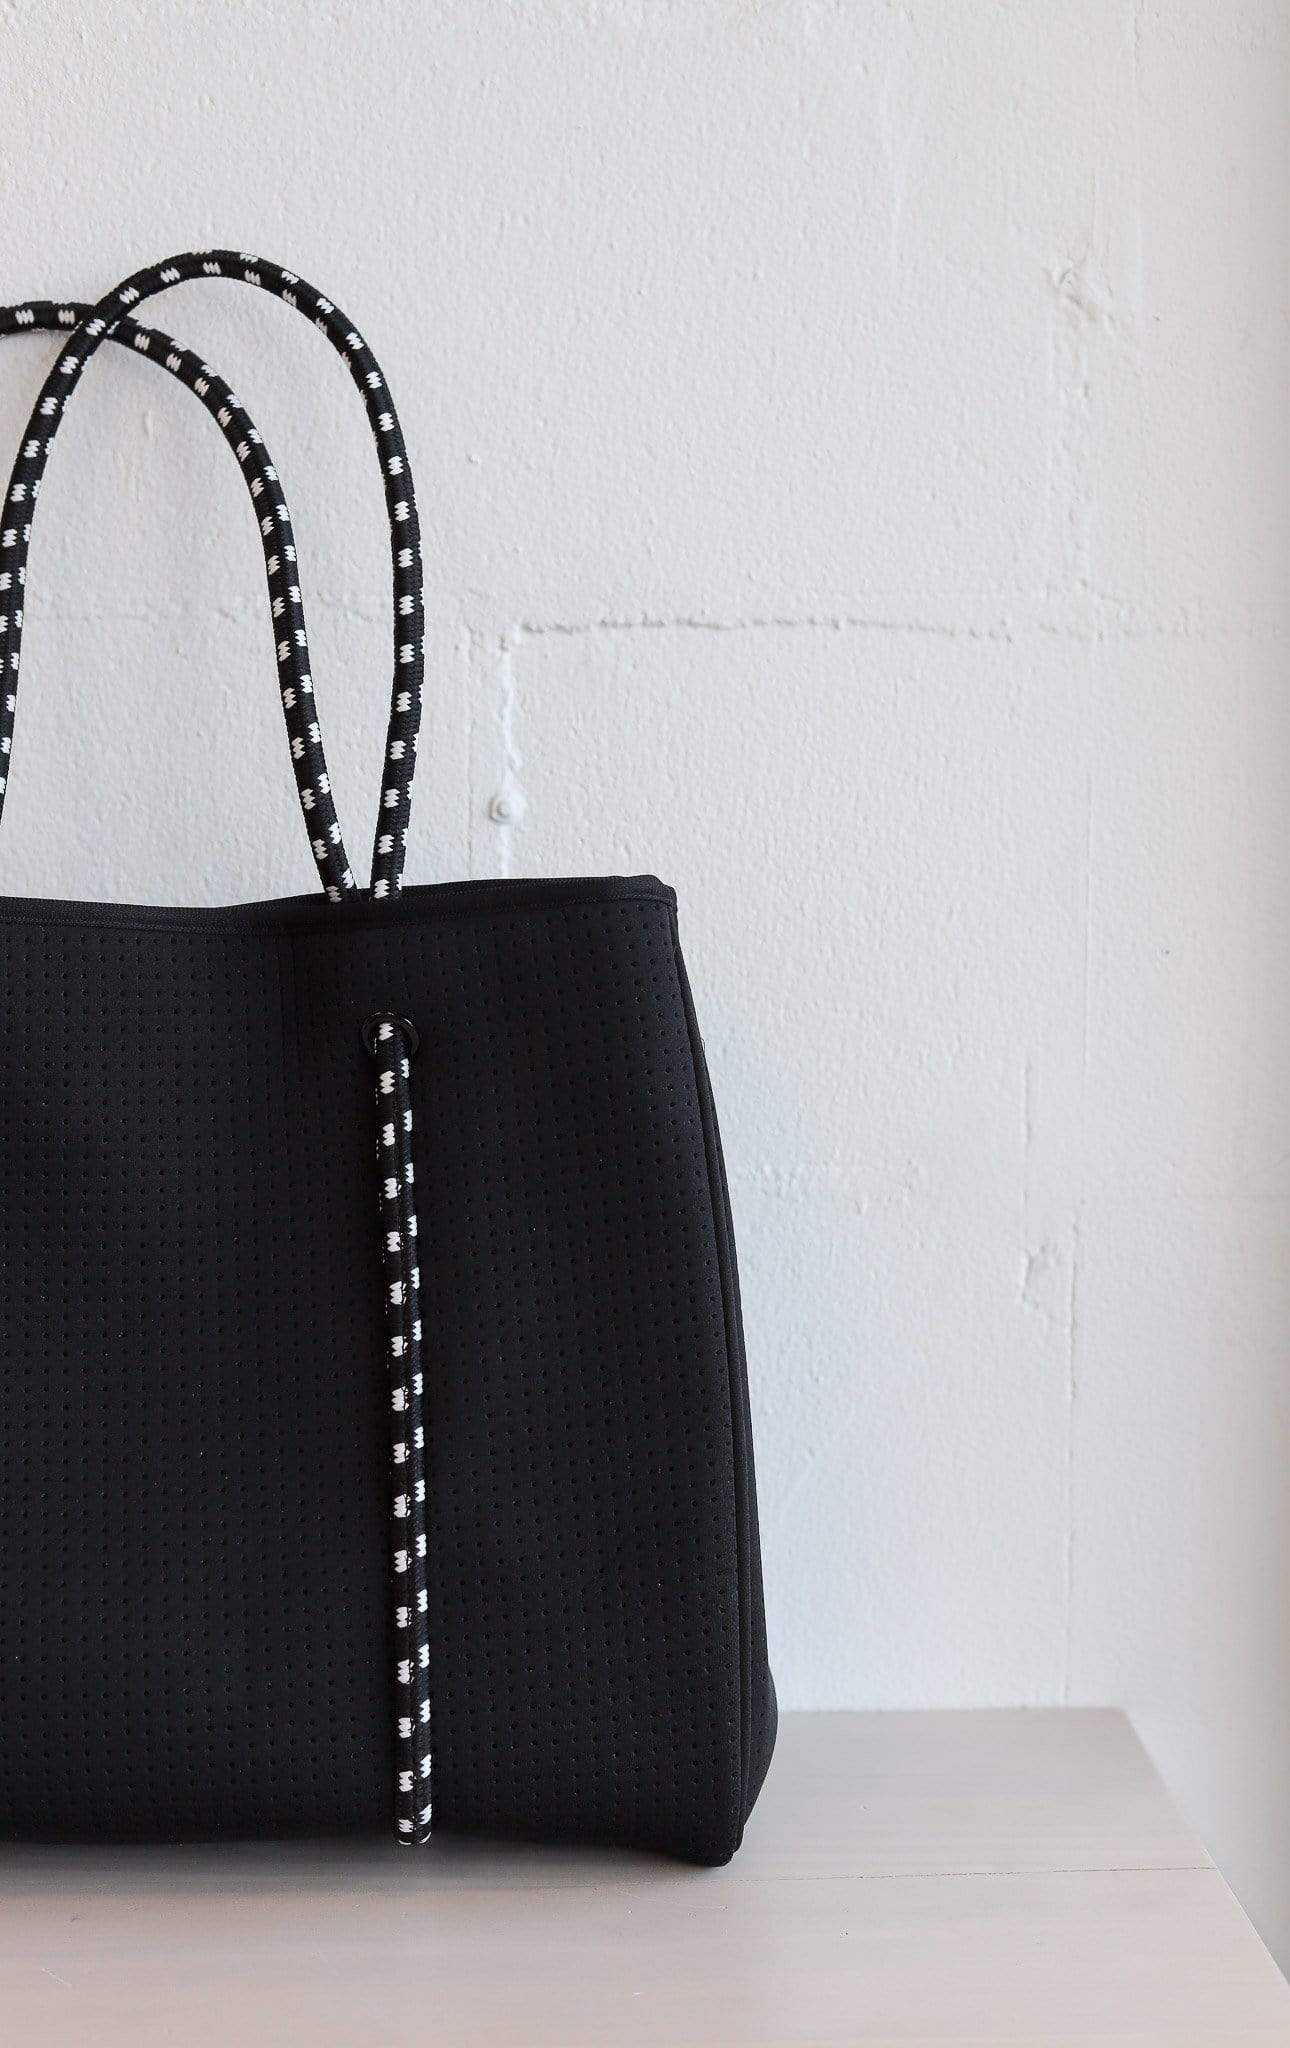 Prene Bags The Classic Tote - Black